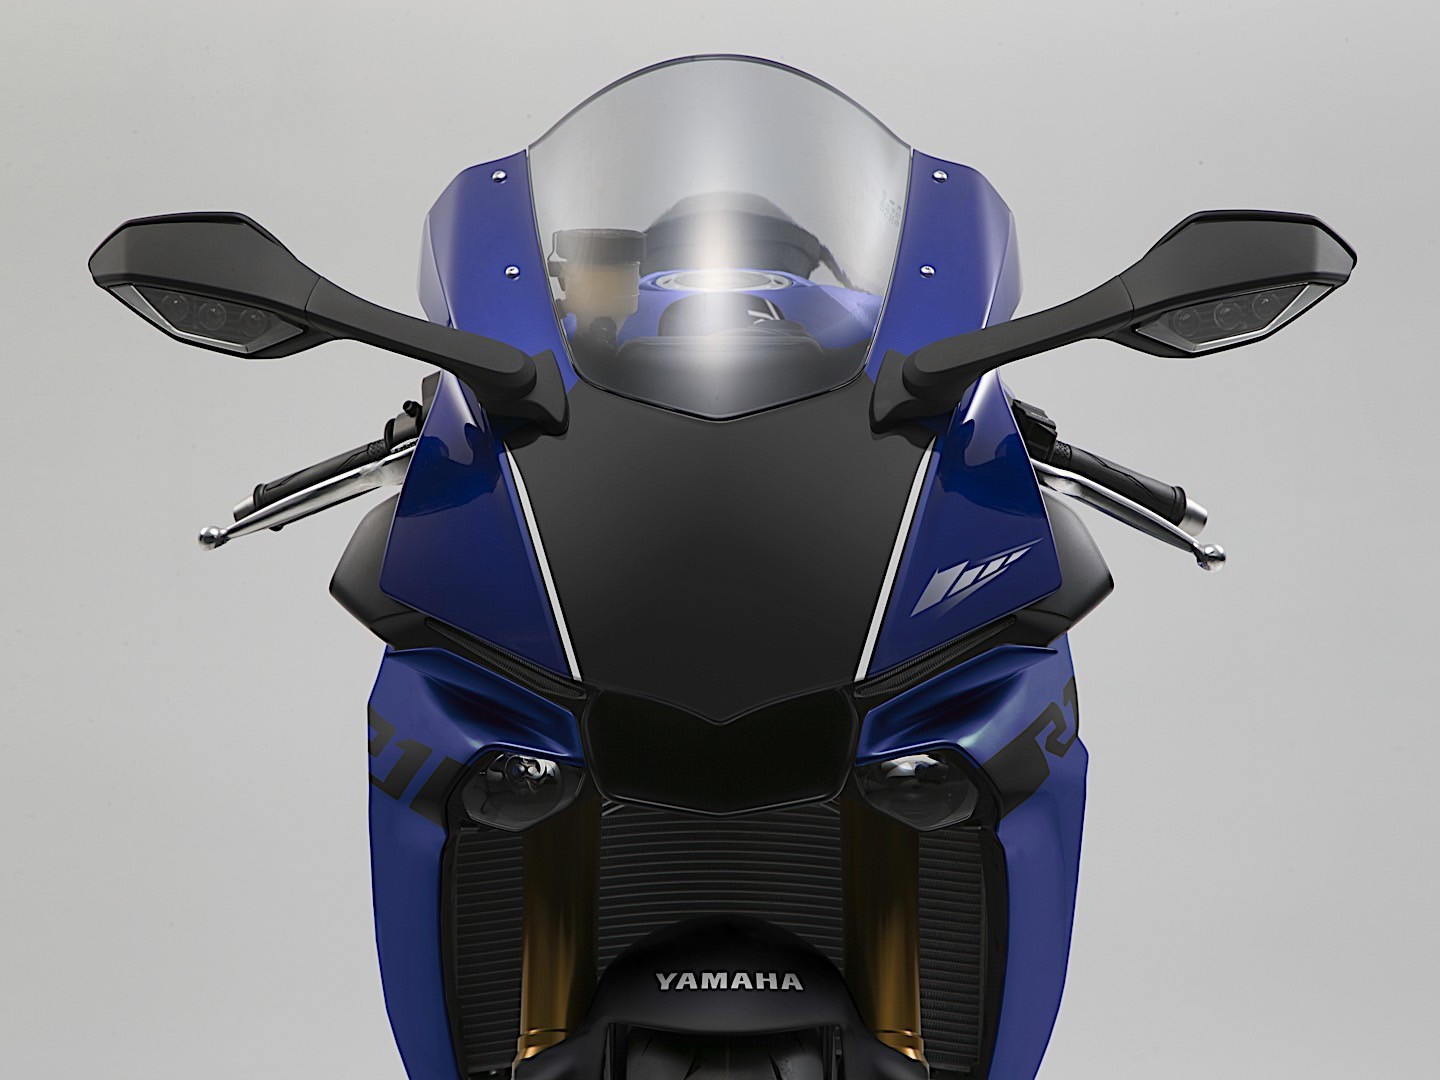 Yamaha Yzf R1m And Yzf R1 Get Performance Upgrades For